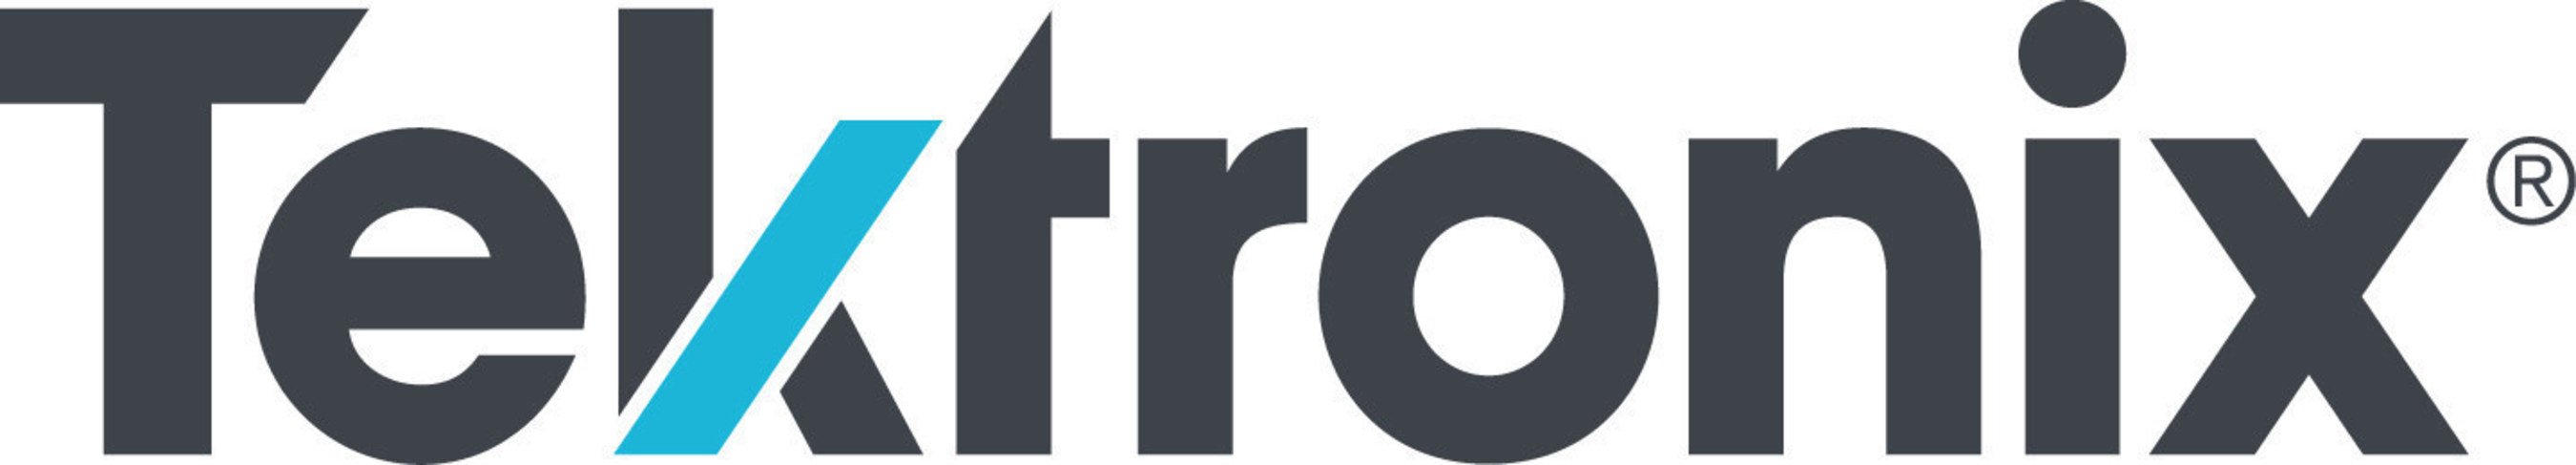 Tektronix unveils new logo, marking the most significant change in its visual identity in 24 years.The legacy ...